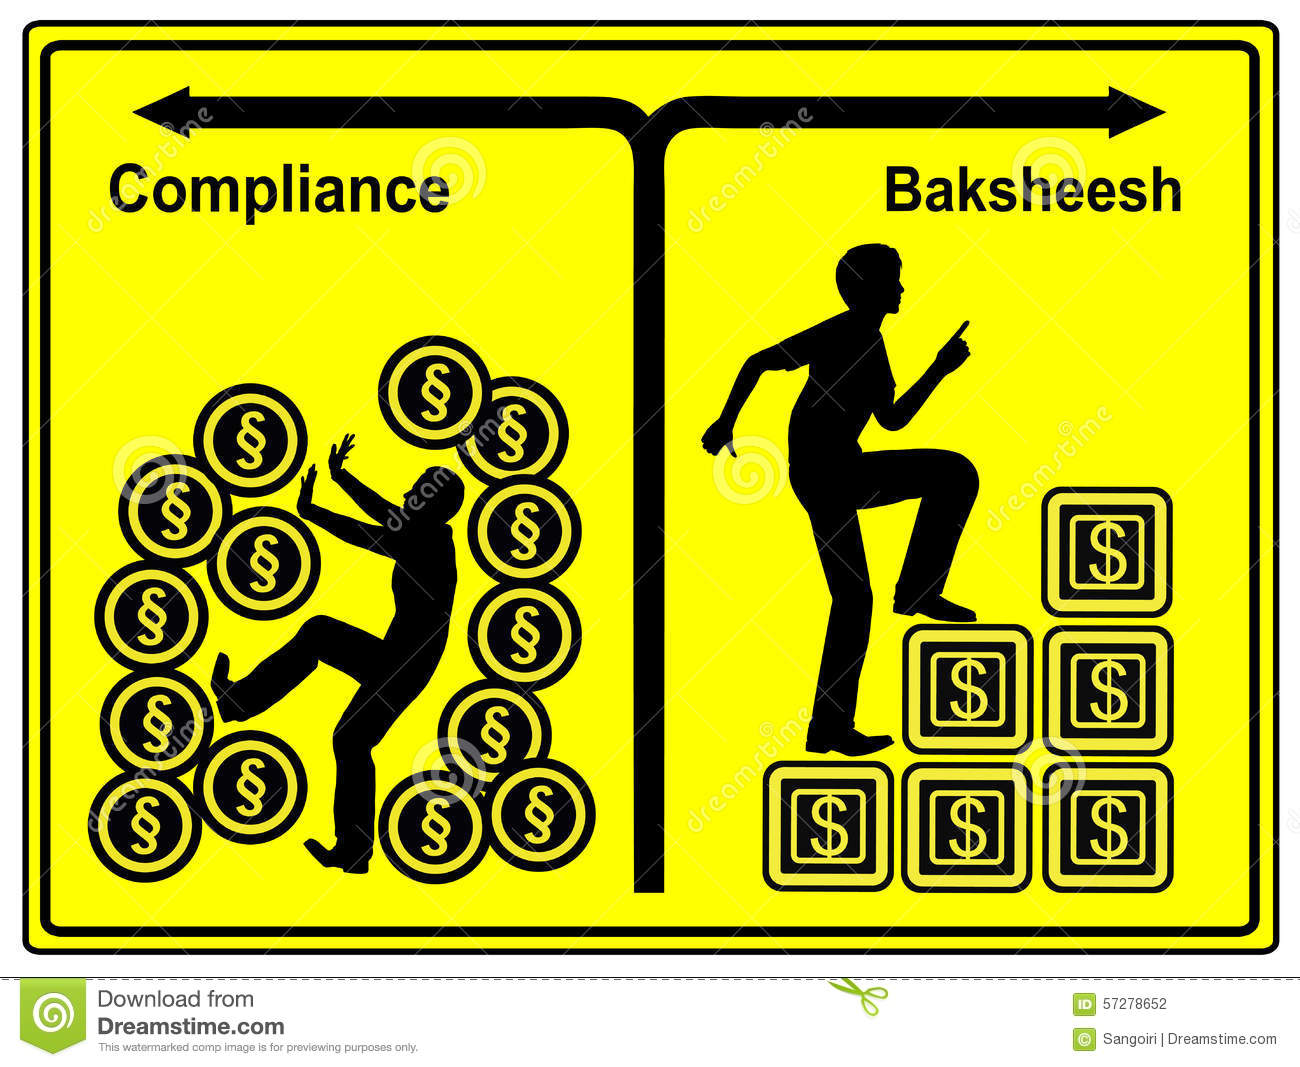 compliance-baksheesh-choice-bribery-elab